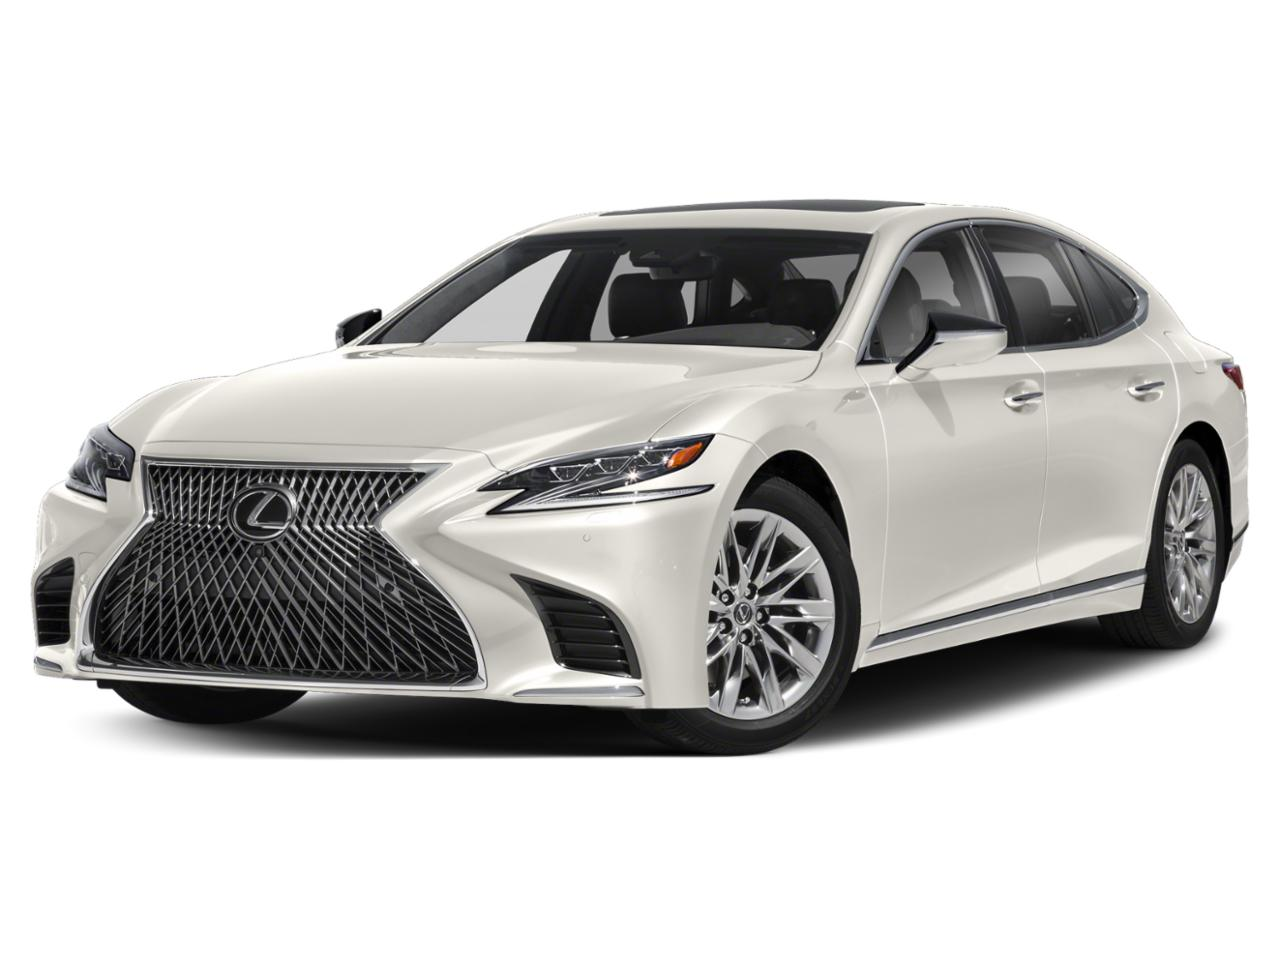 2020 Lexus LS Vehicle Photo in Dallas, TX 75235